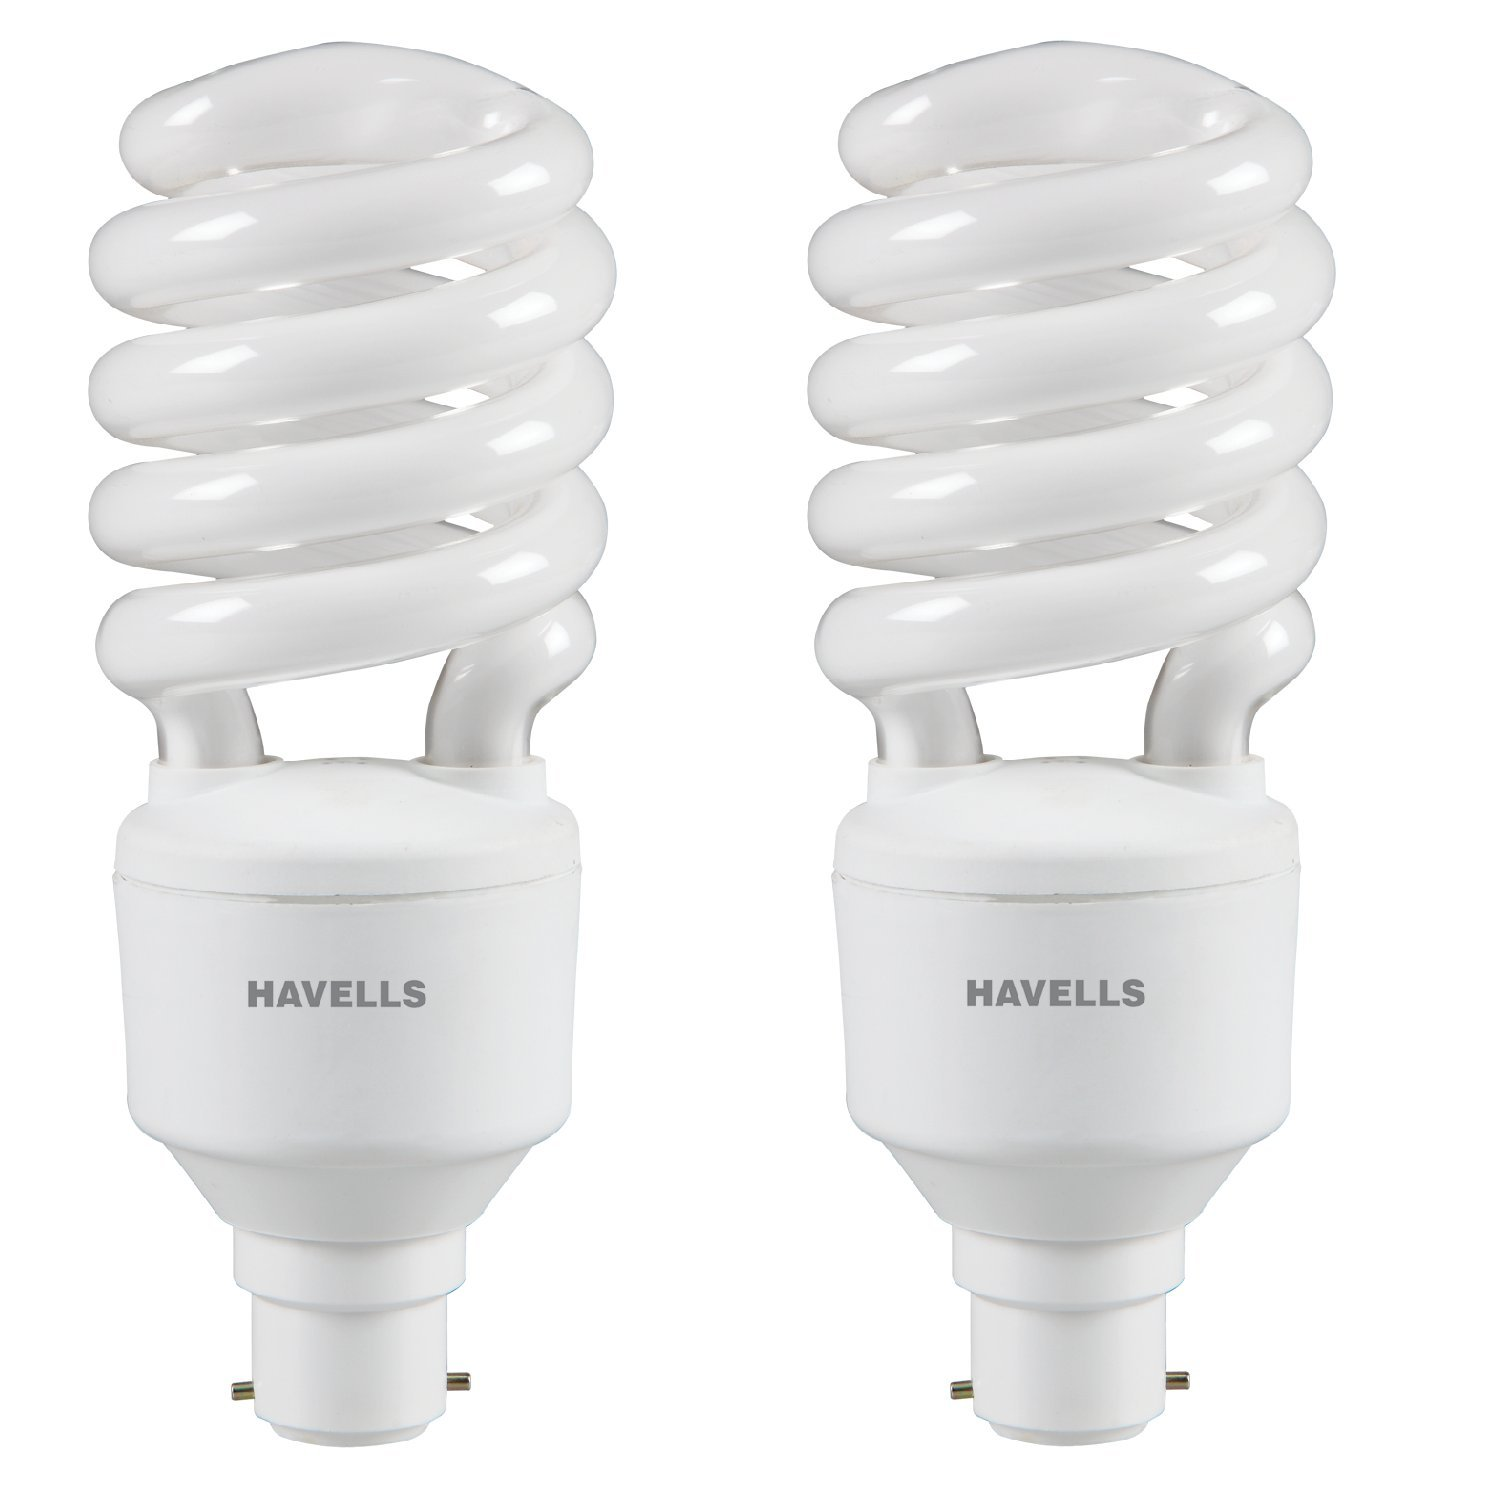 Buy Havells SP B 22 27 Watt CFL Bulb Cool Day Light And Pack Of 2 Online At Low Prices In India